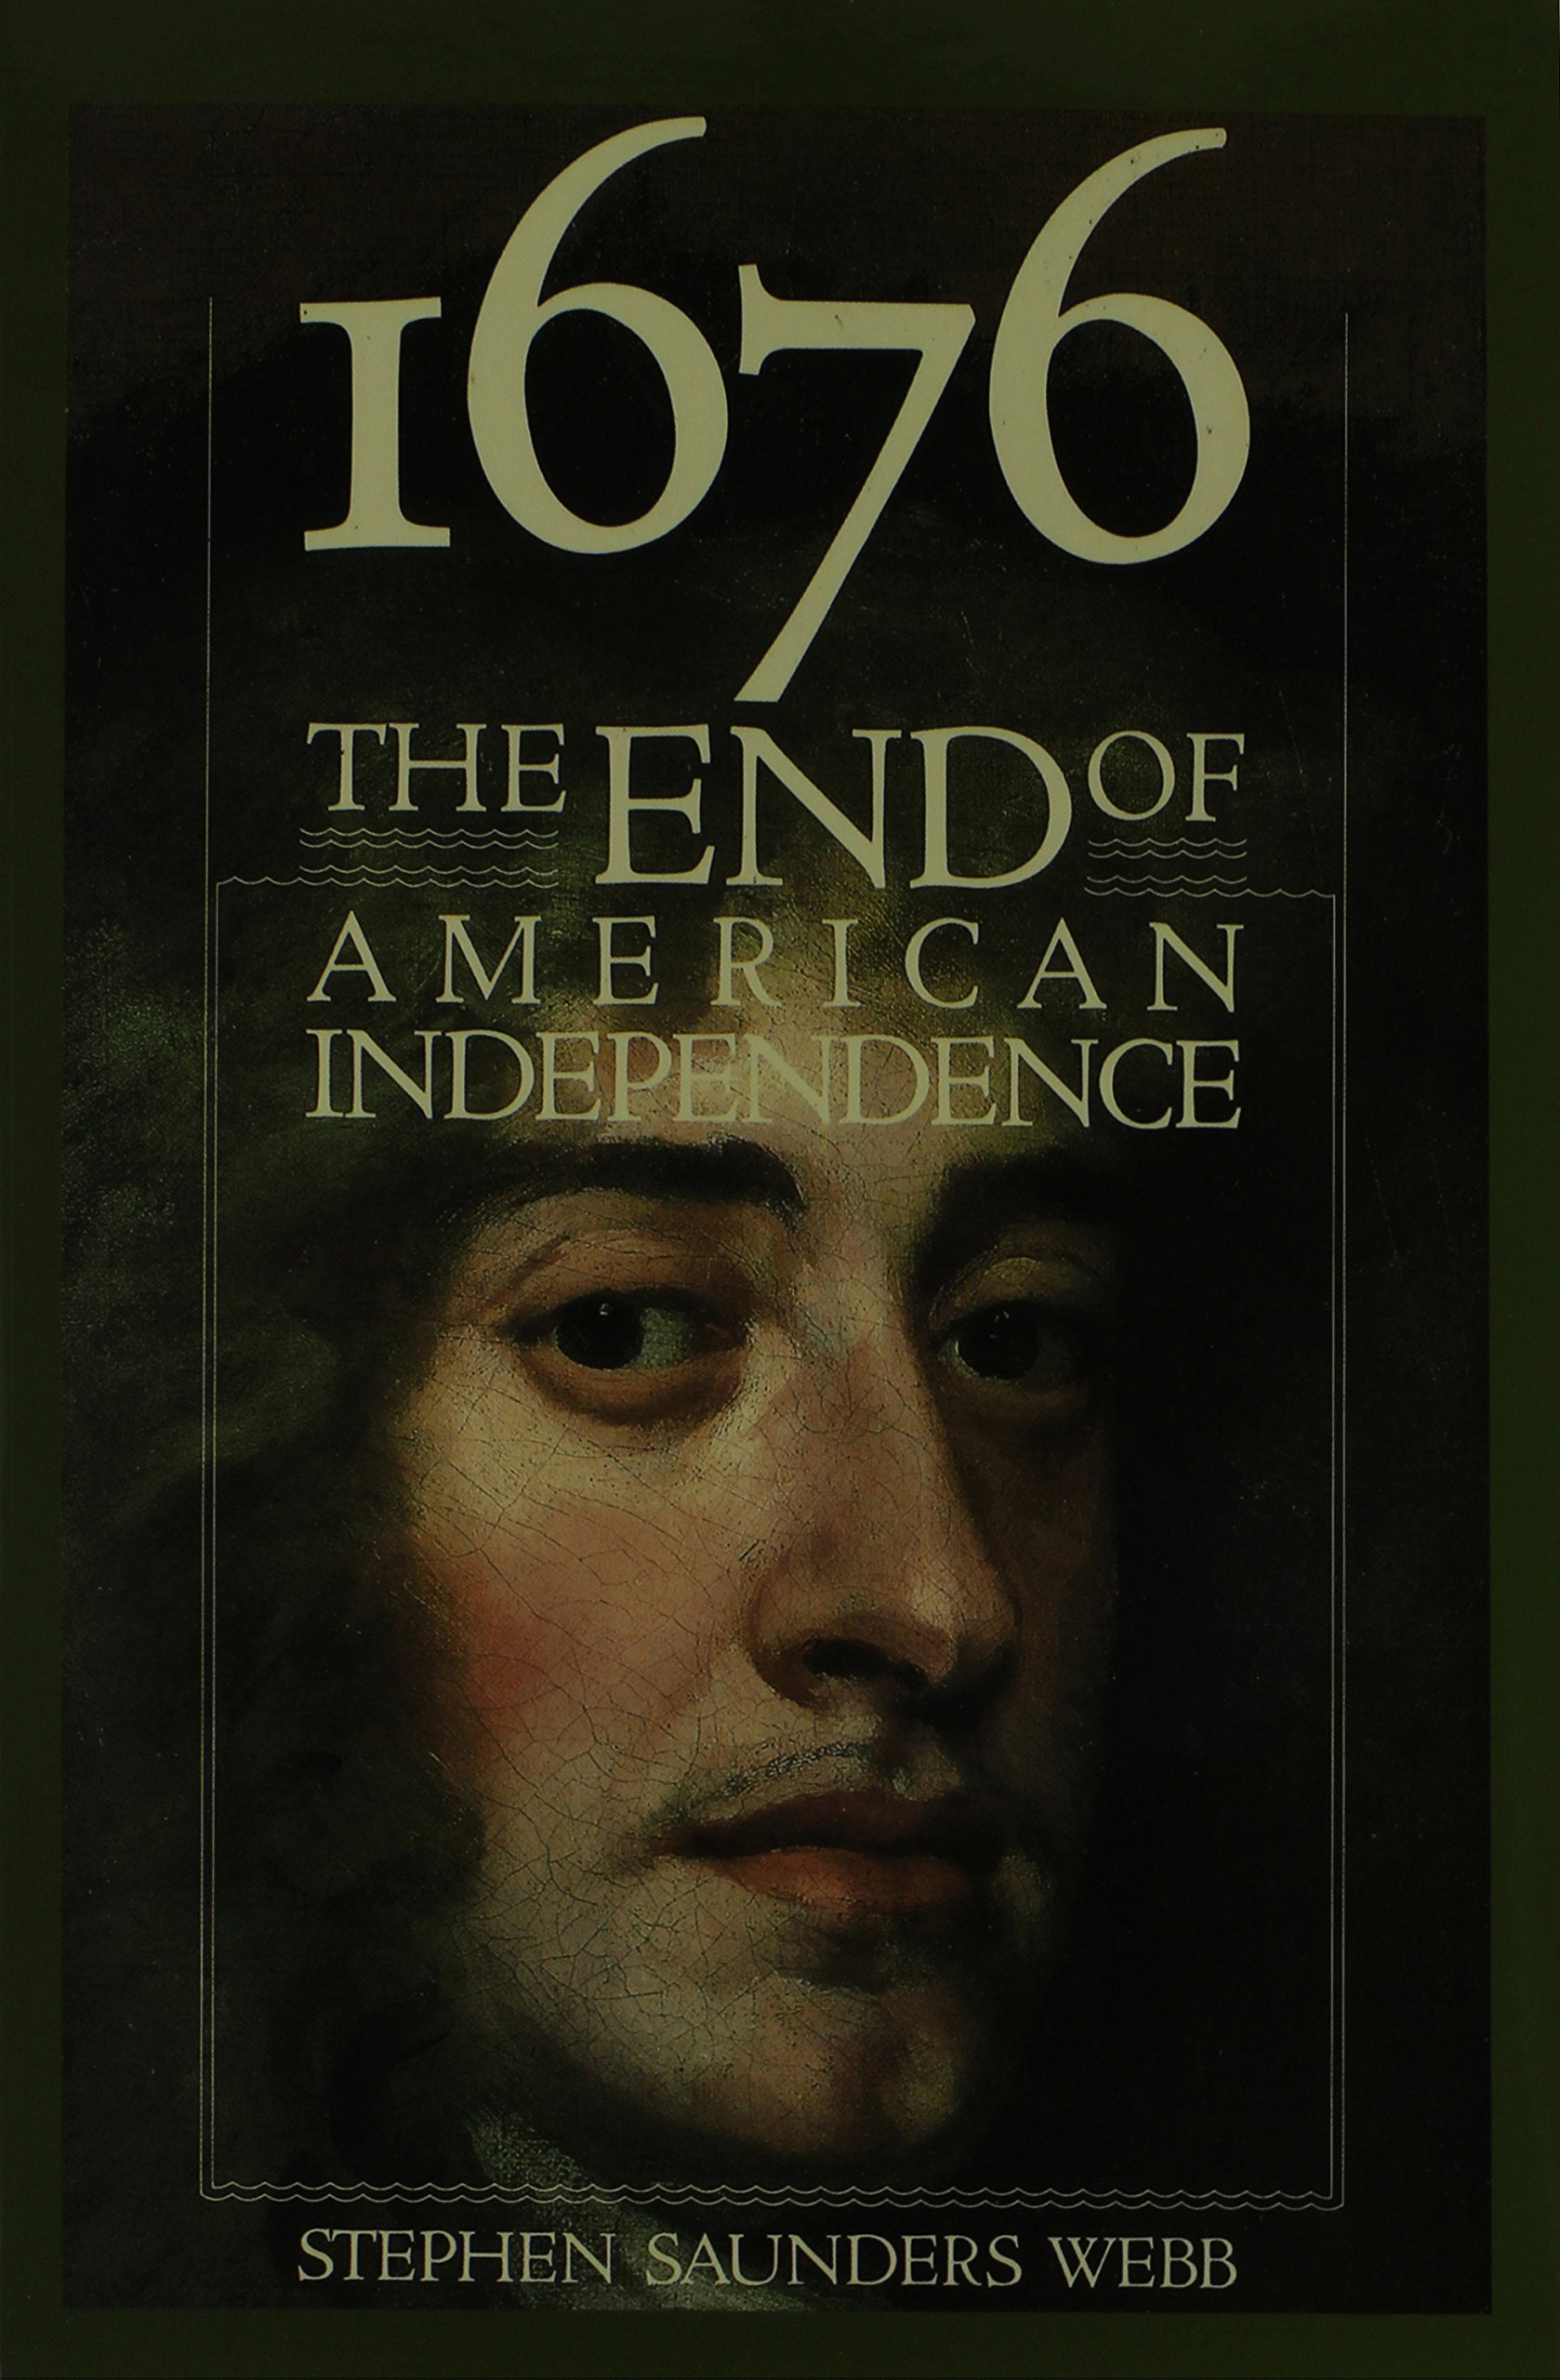 1676: The End of American Independence: Stephen Webb: 9780815603610:  Amazon.com: Books